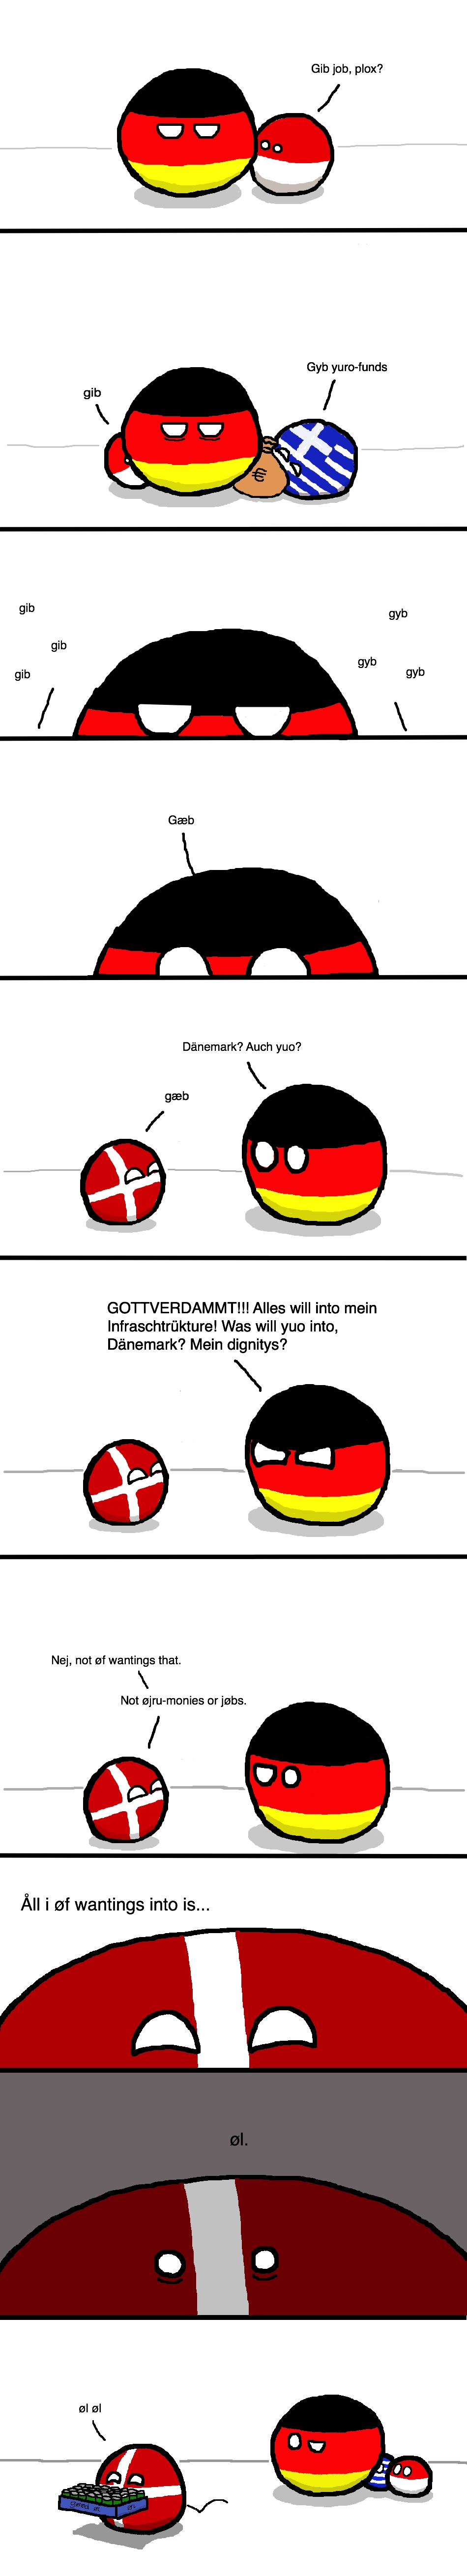 What Poland, Greece and Denmark want from Germany?